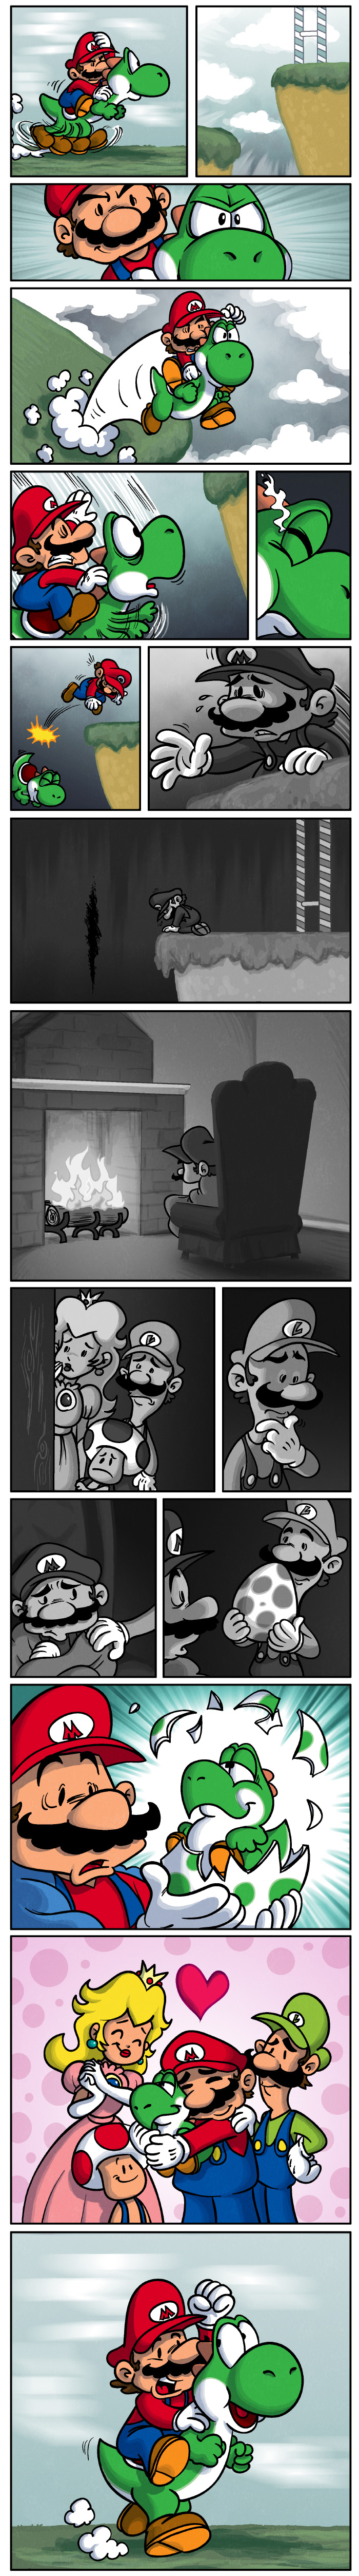 Dark Nintendo Comic: How Mario Deals with Yoshi